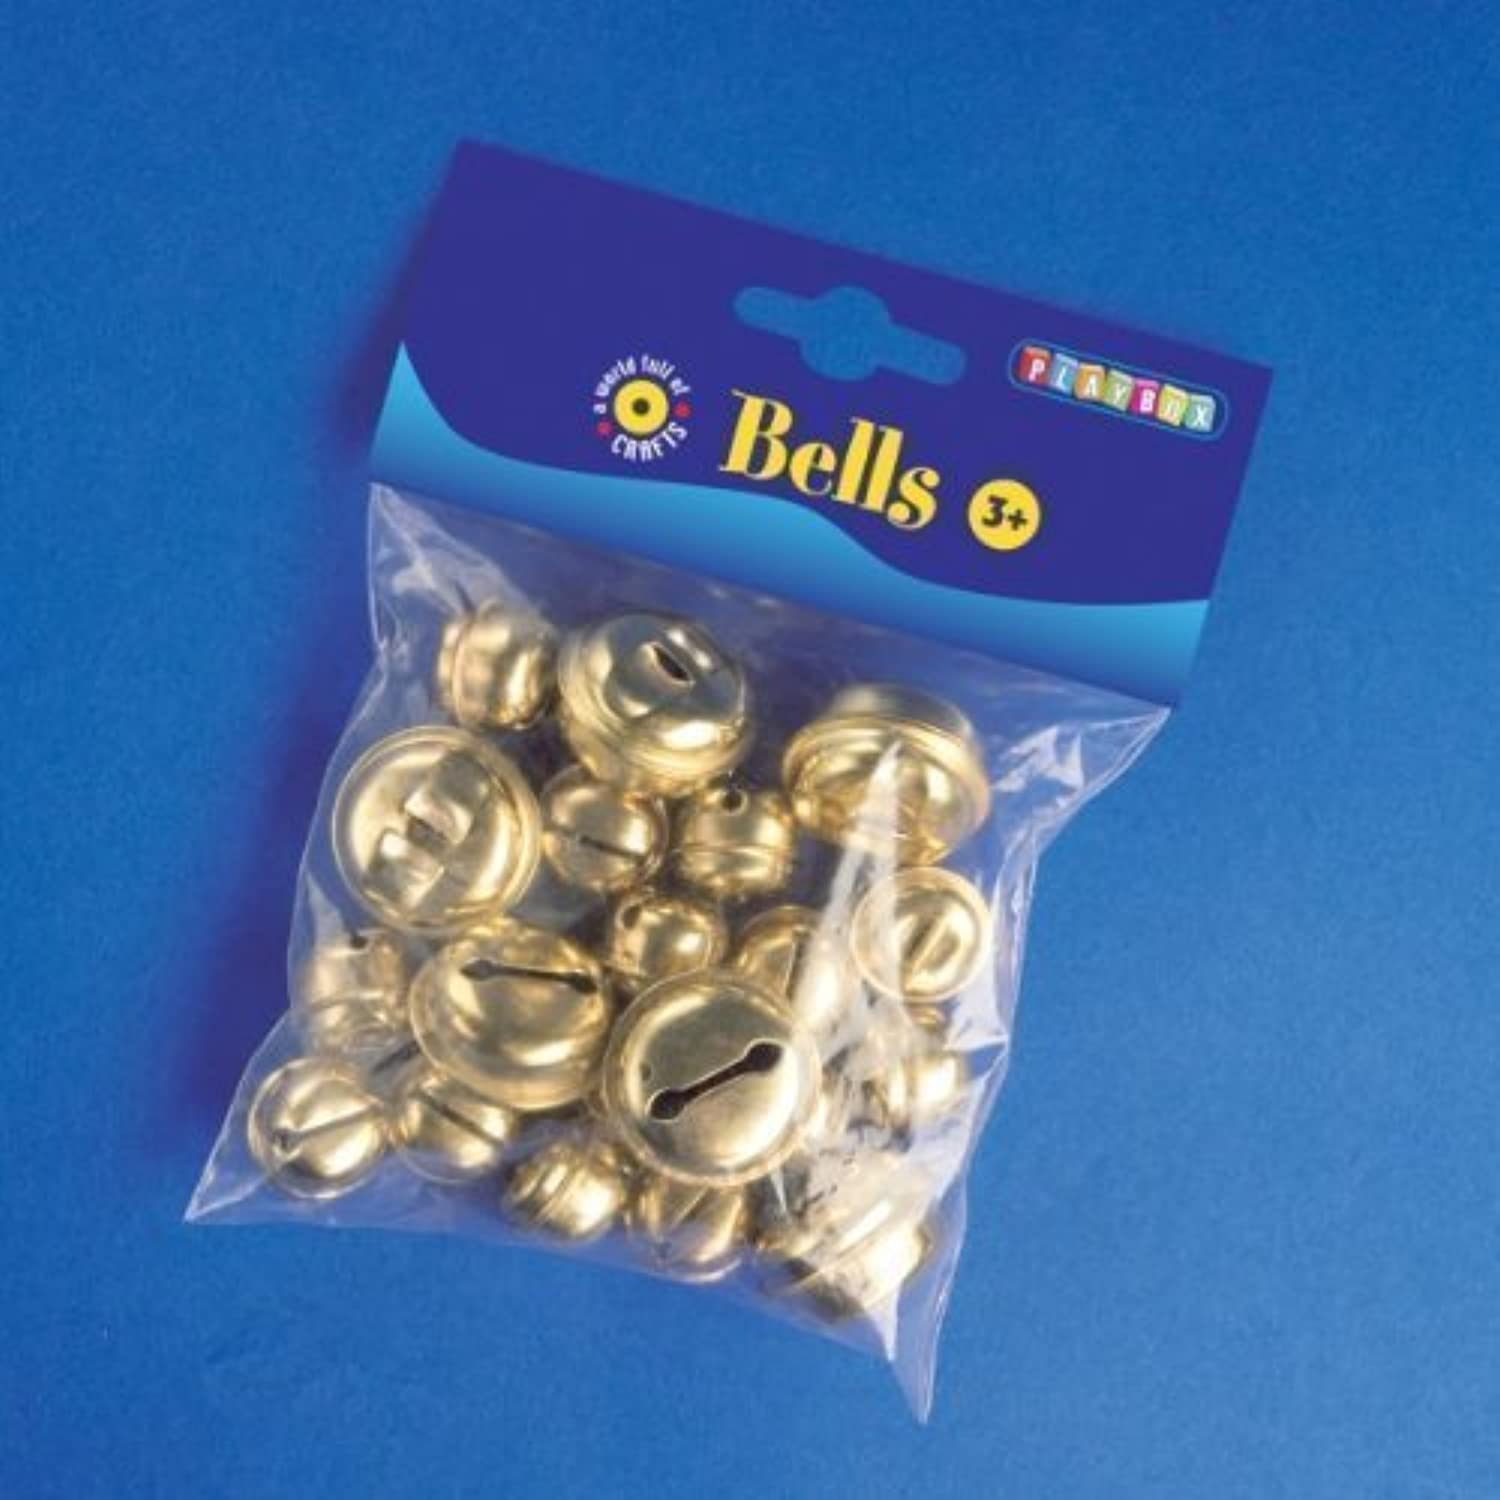 Playbox 20  30mm Bells (20 Pieces) by Playbox